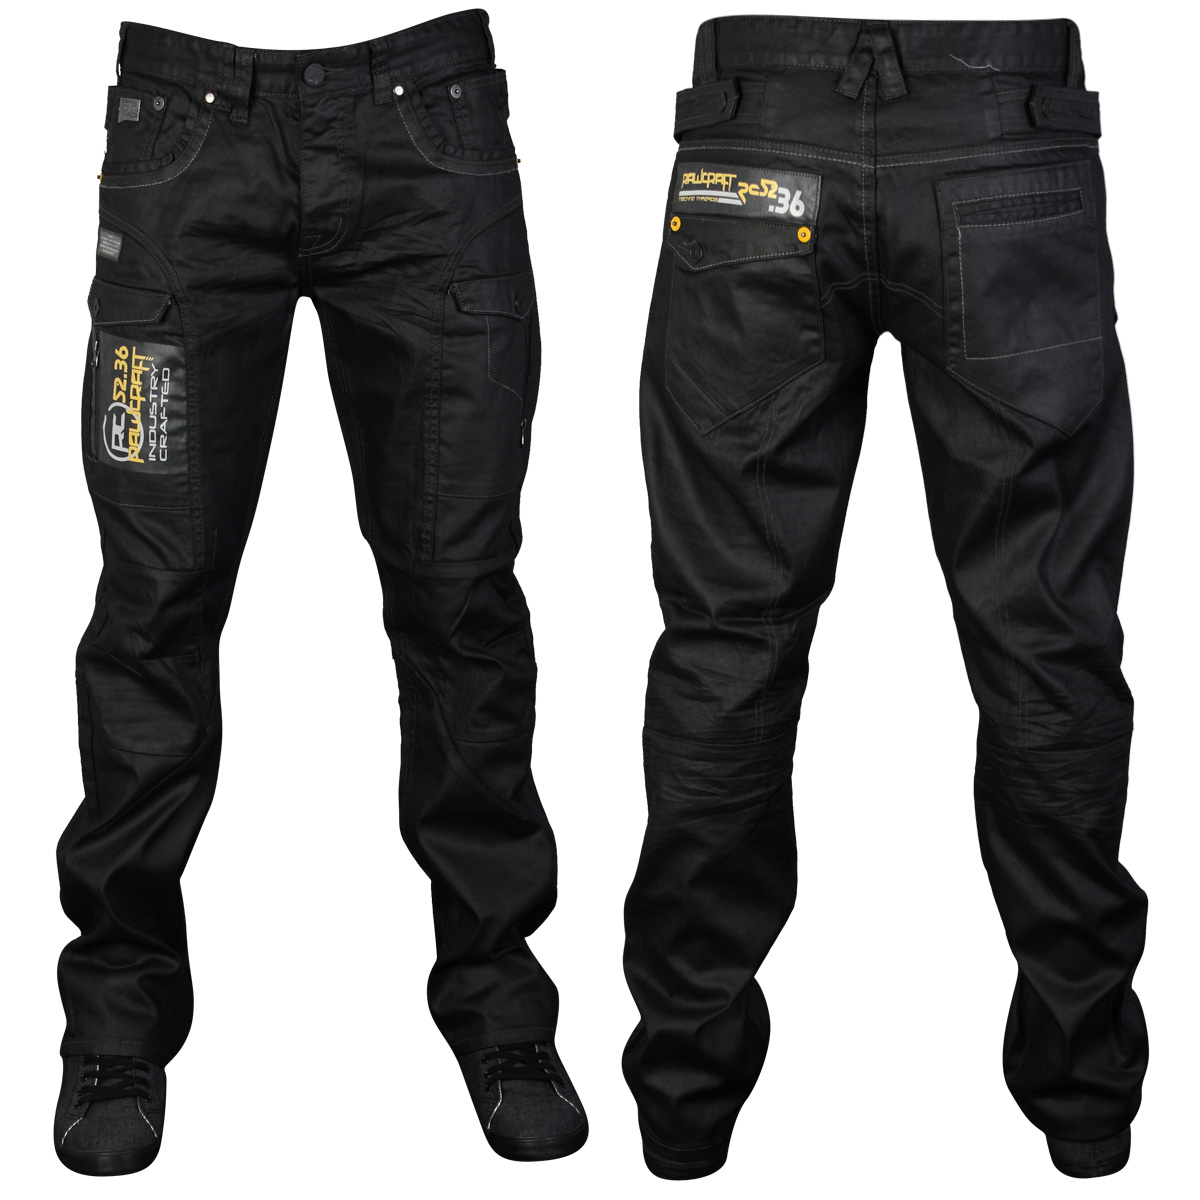 Designer jeans and trousers are an everyday clothing staple that no man can be without. Put simply, purchasing some new designer jeans is always a solid investment! A good pair of Men's jeans or designer trousers is engineered to last and designed to be worn for years. We have the latest in stonewash, light blue, dark blue, grey, black and distressed jeans.